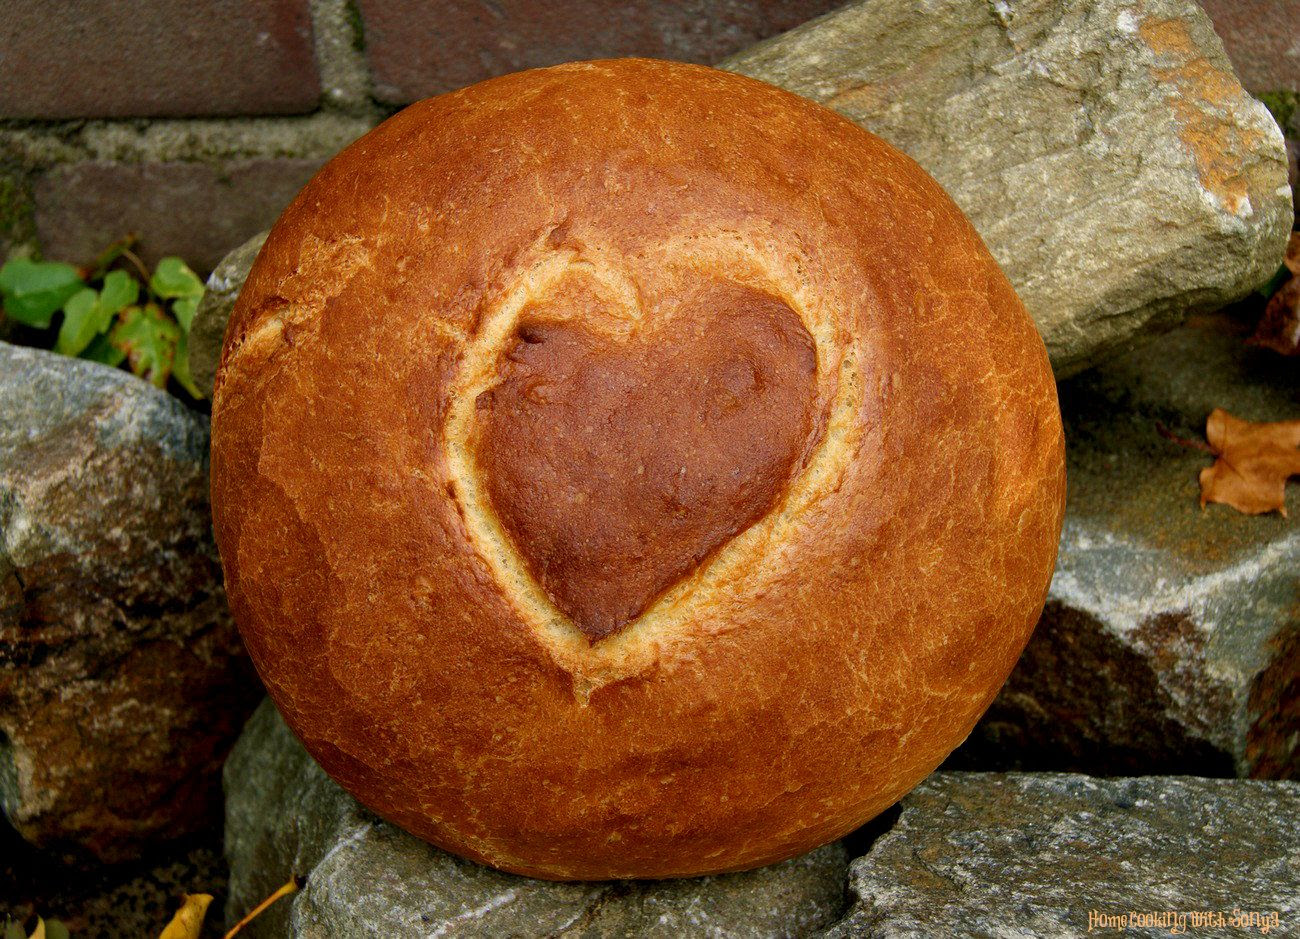 22.10, Showing the love for bread baking